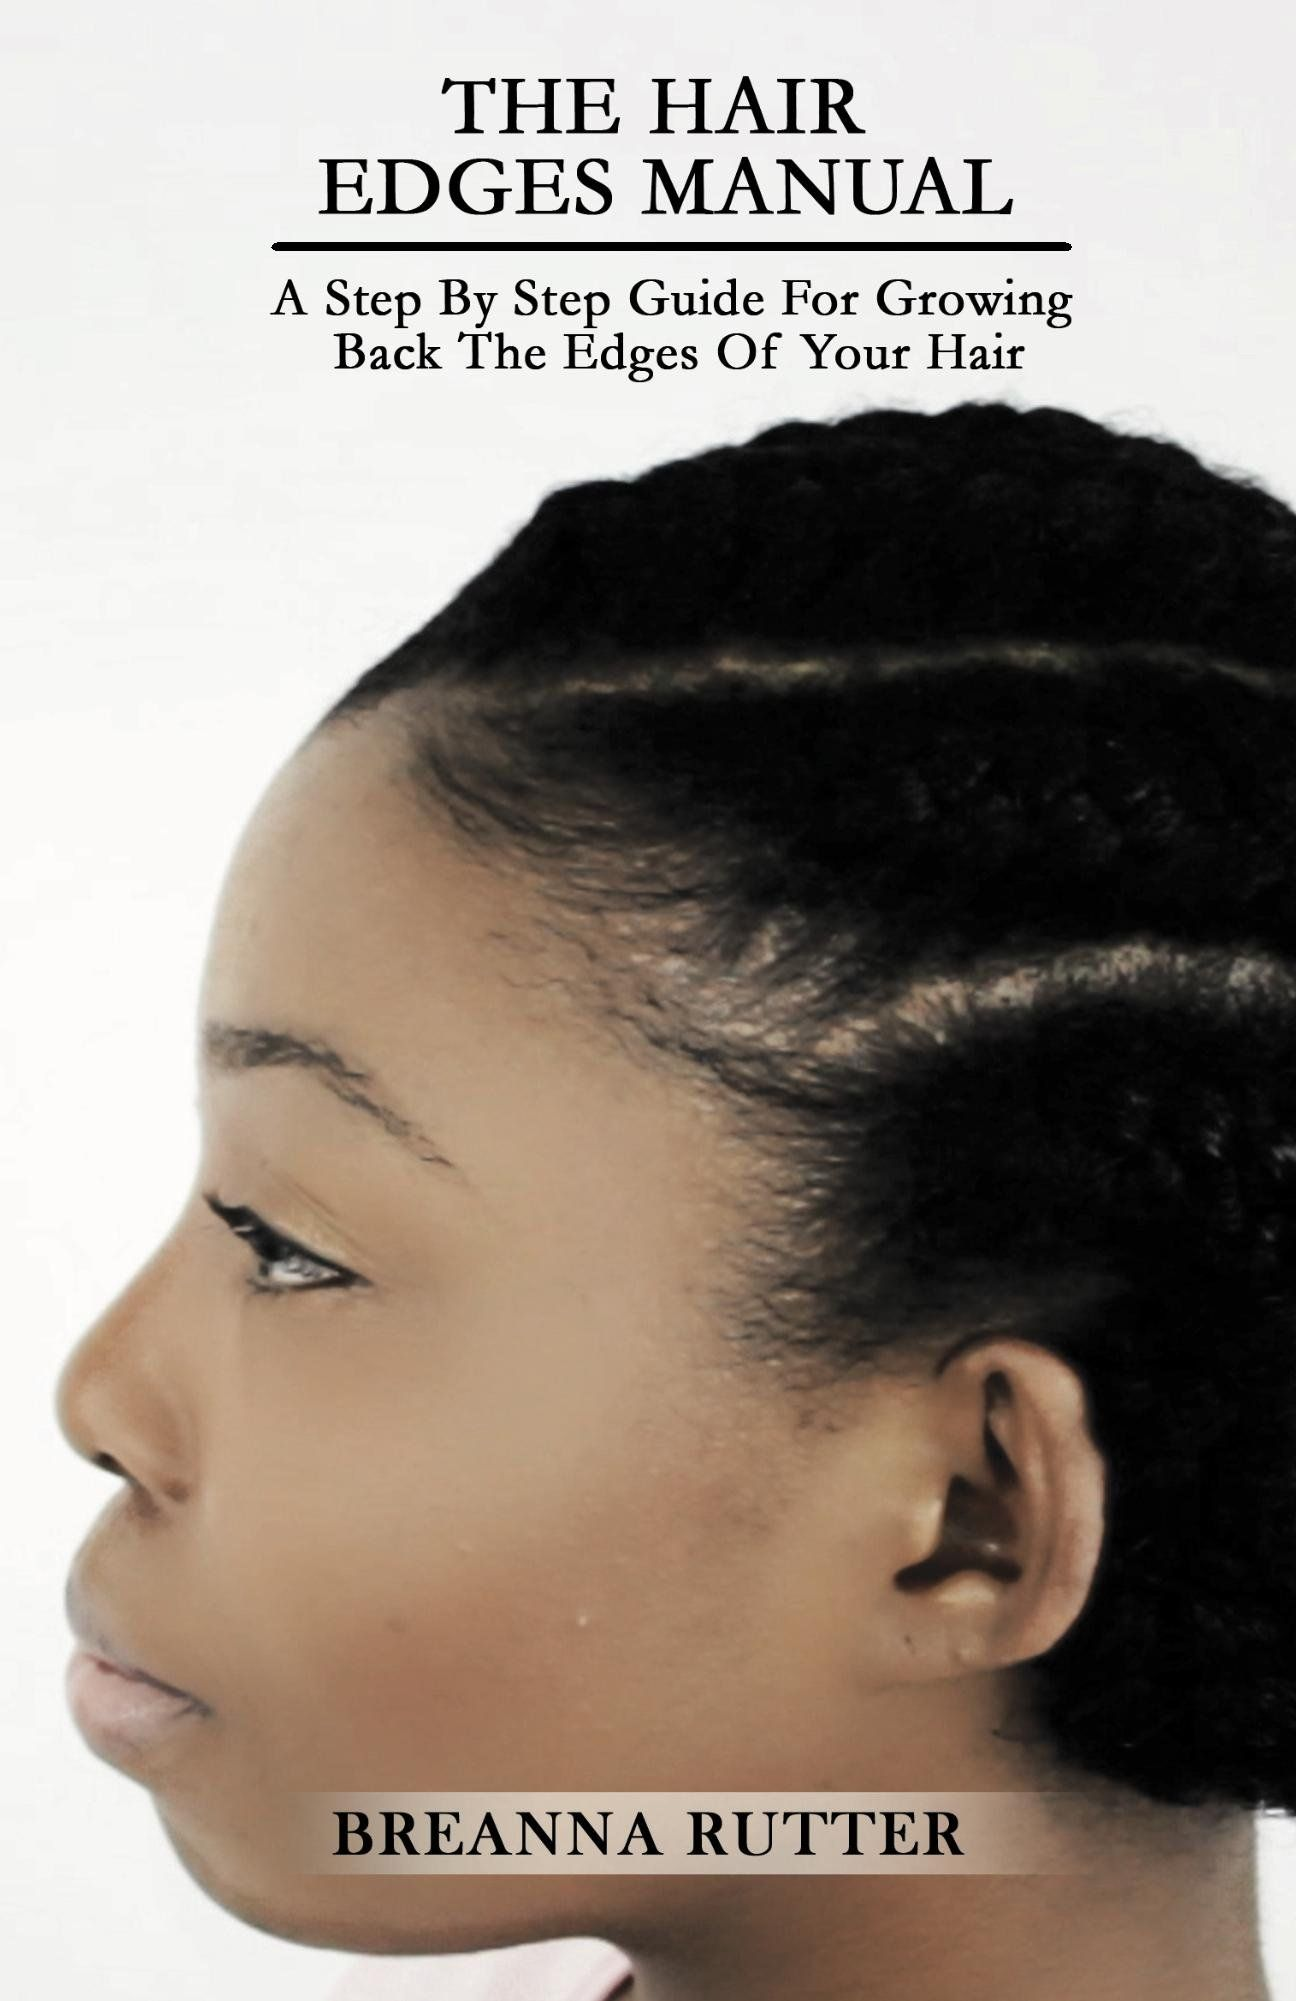 The Hair Edges Manual A Step By Step Guide For Growing